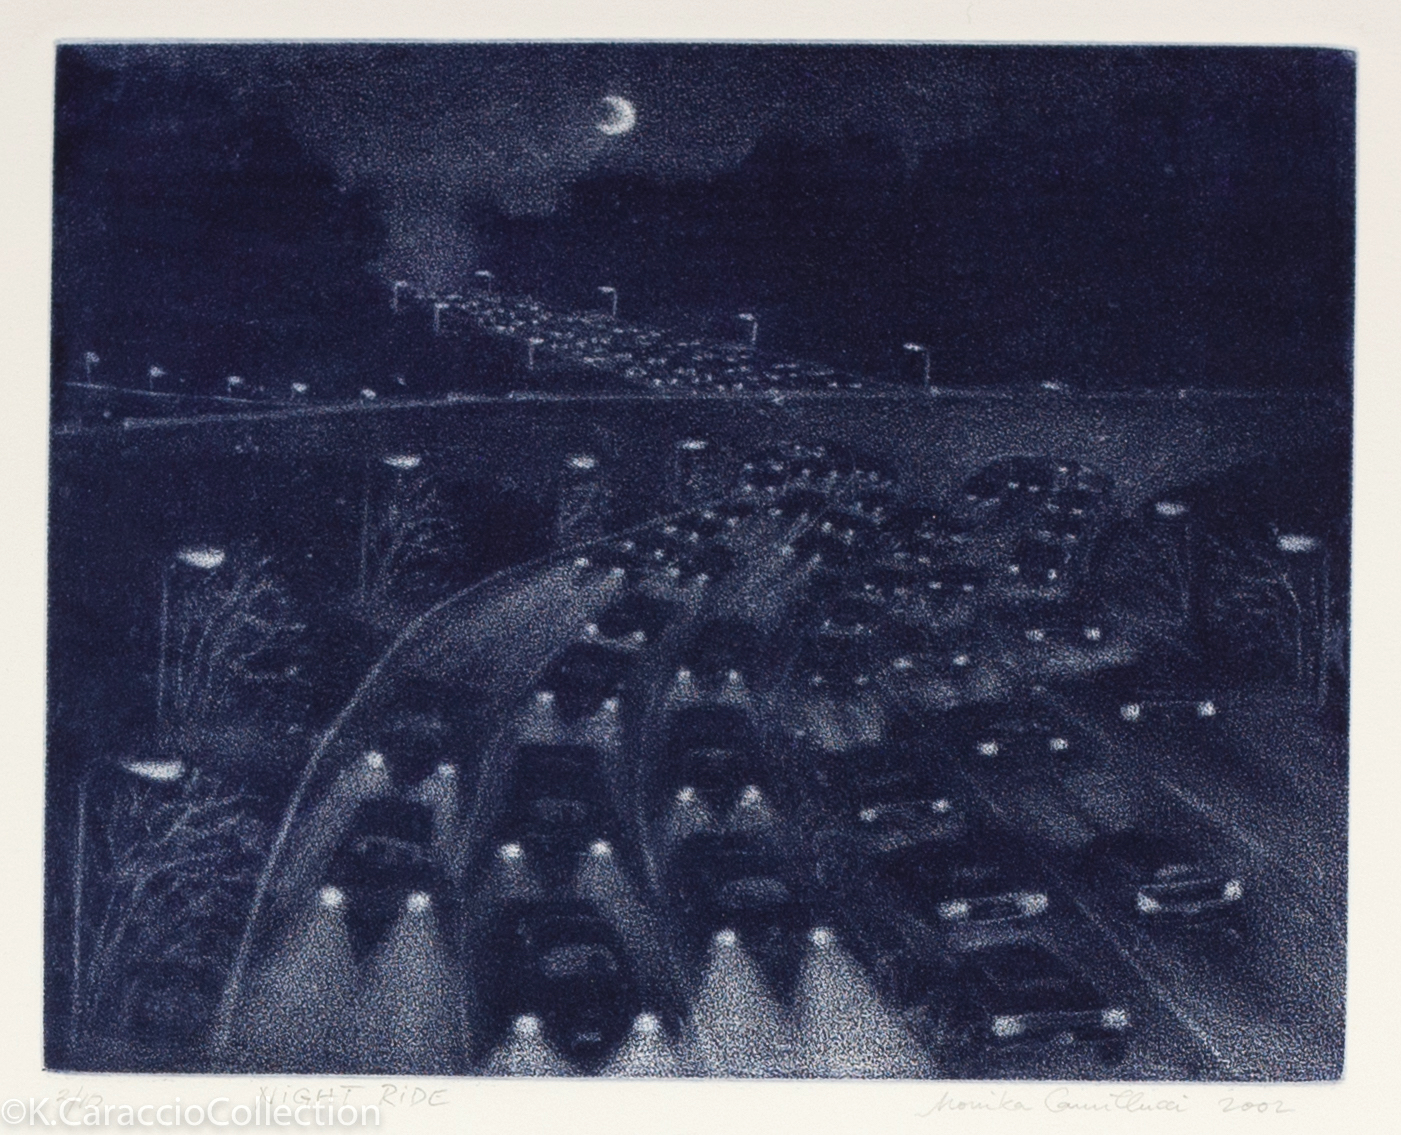 Night Ride, 2002